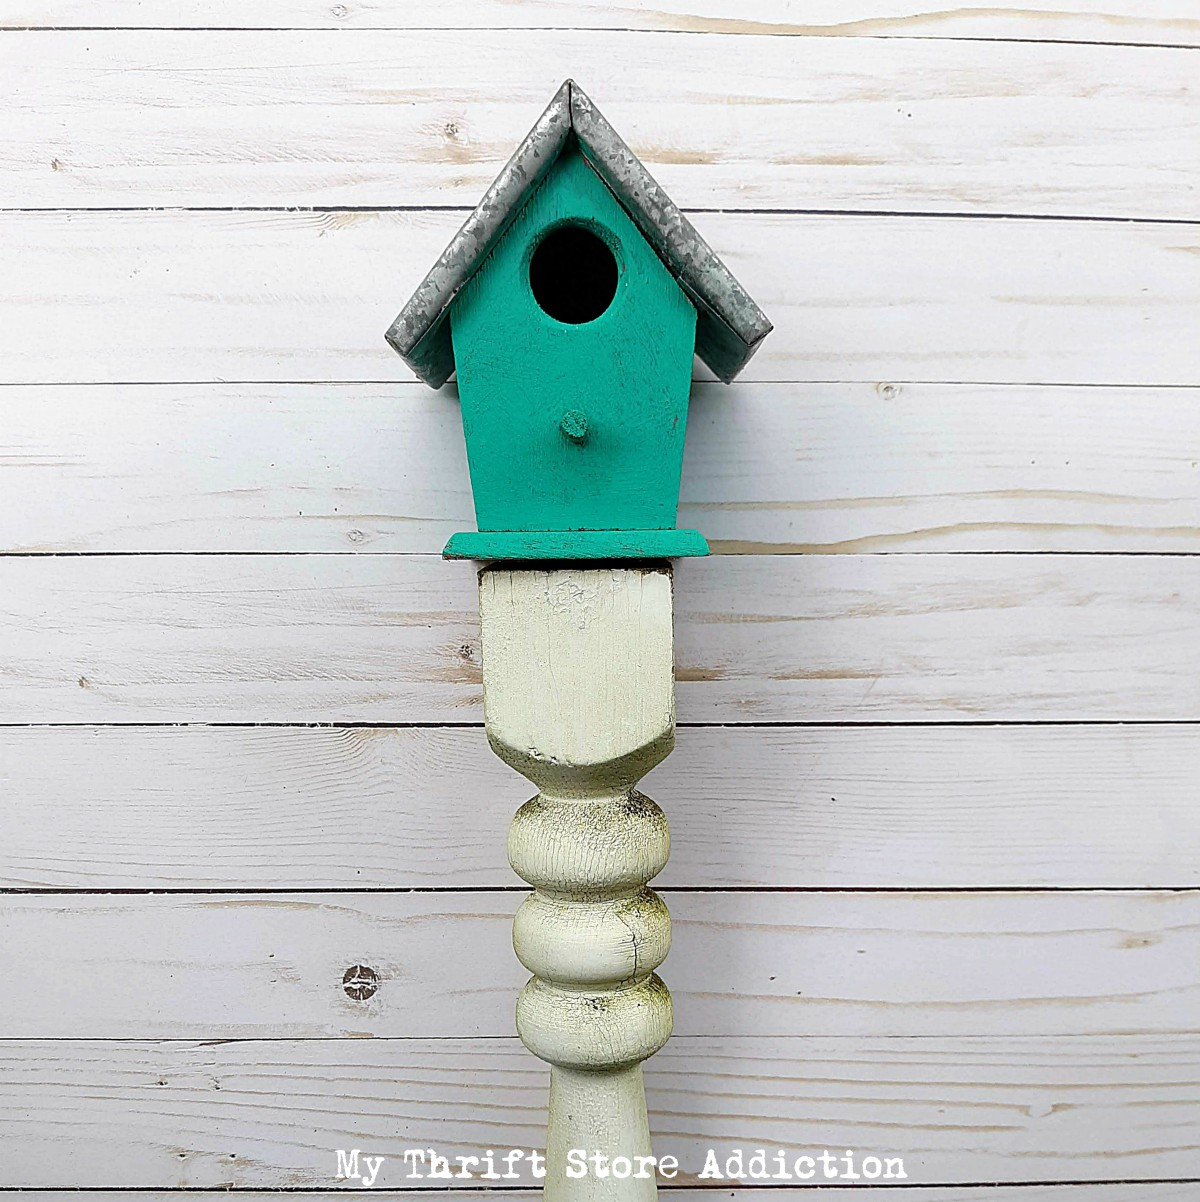 upcycled baluster birdhouse